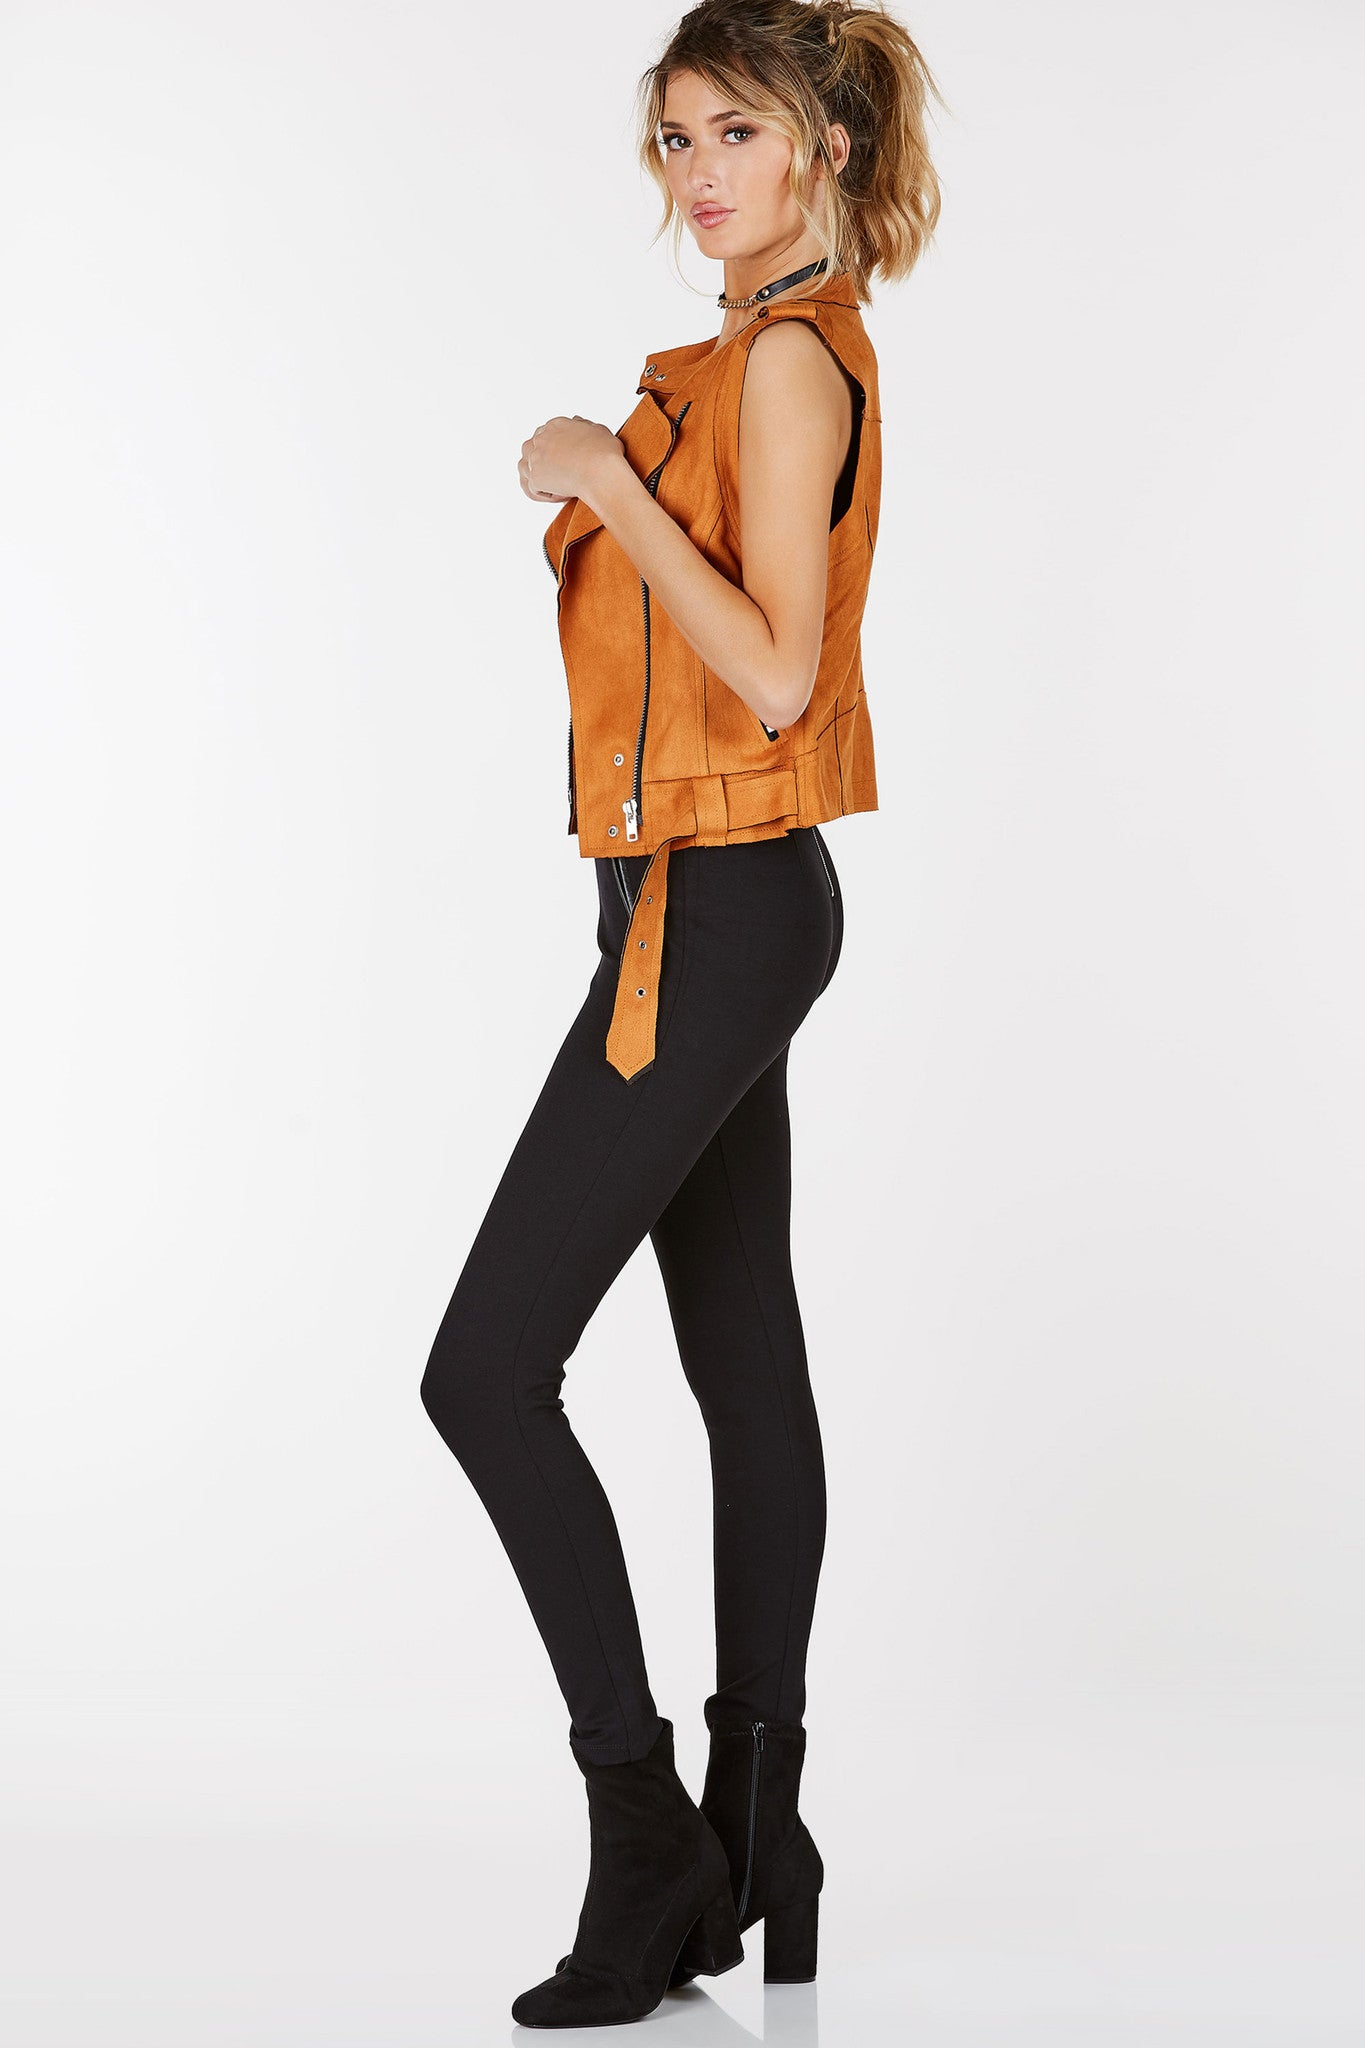 Suede moto vest with asymmetrical front zip closure. Side pockets with silver hardware detailing.